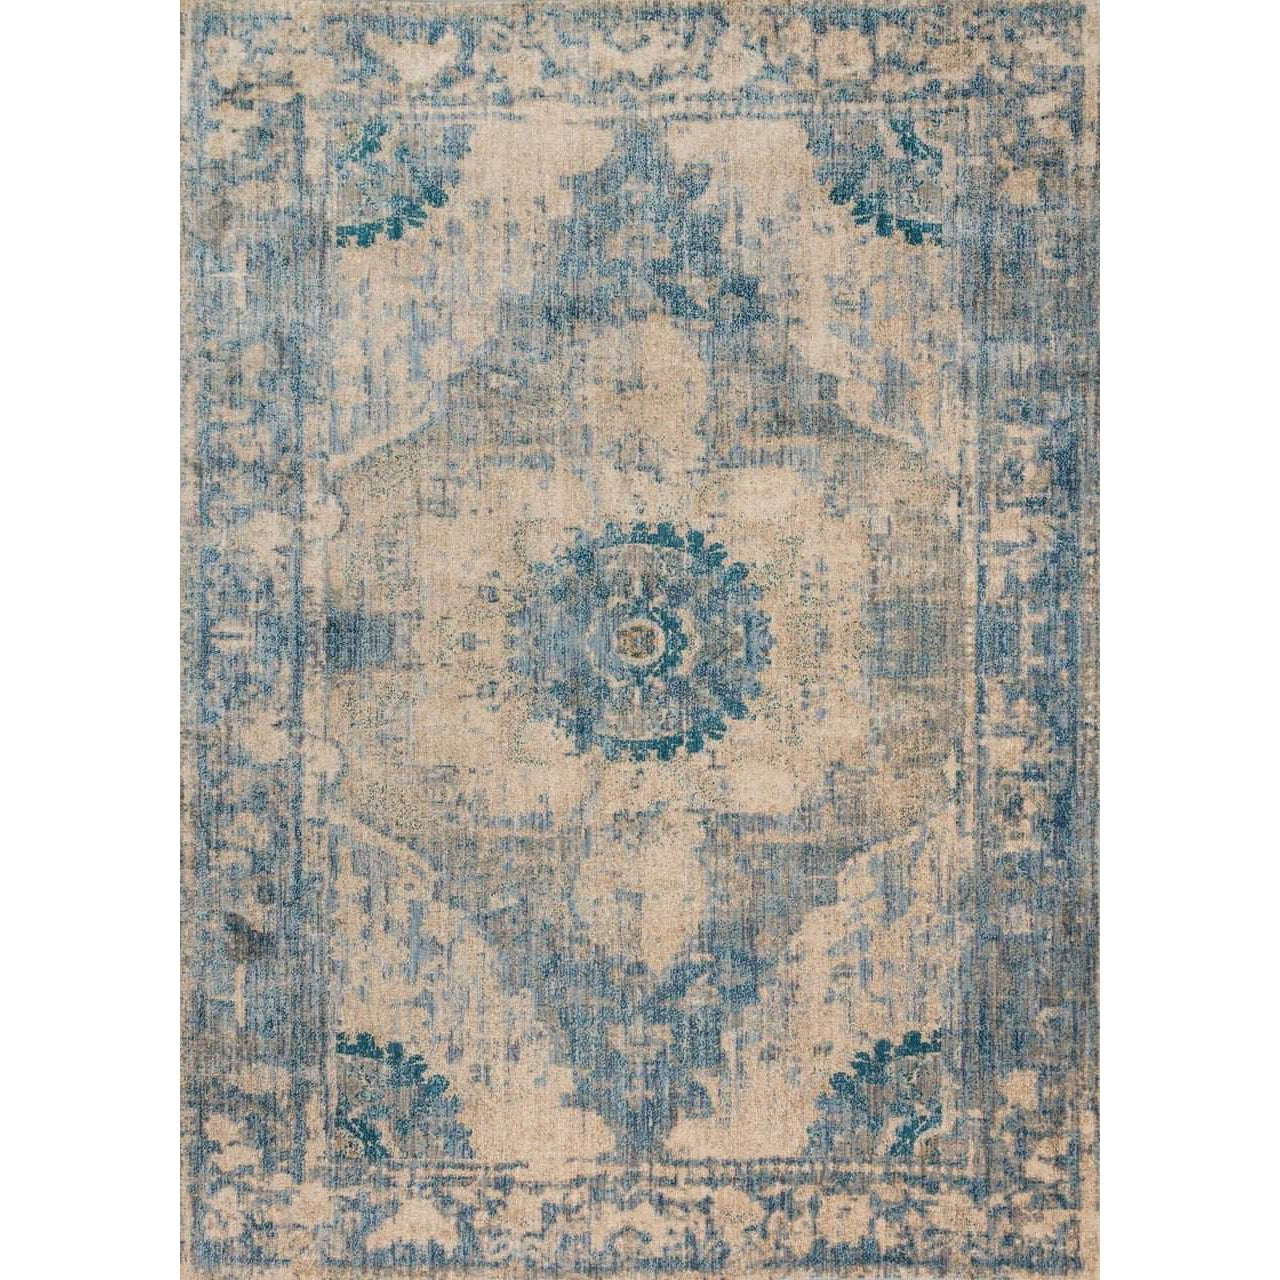 Joanna Gaines of Magnolia Home Kivi Rug Collection - Sand / Sky